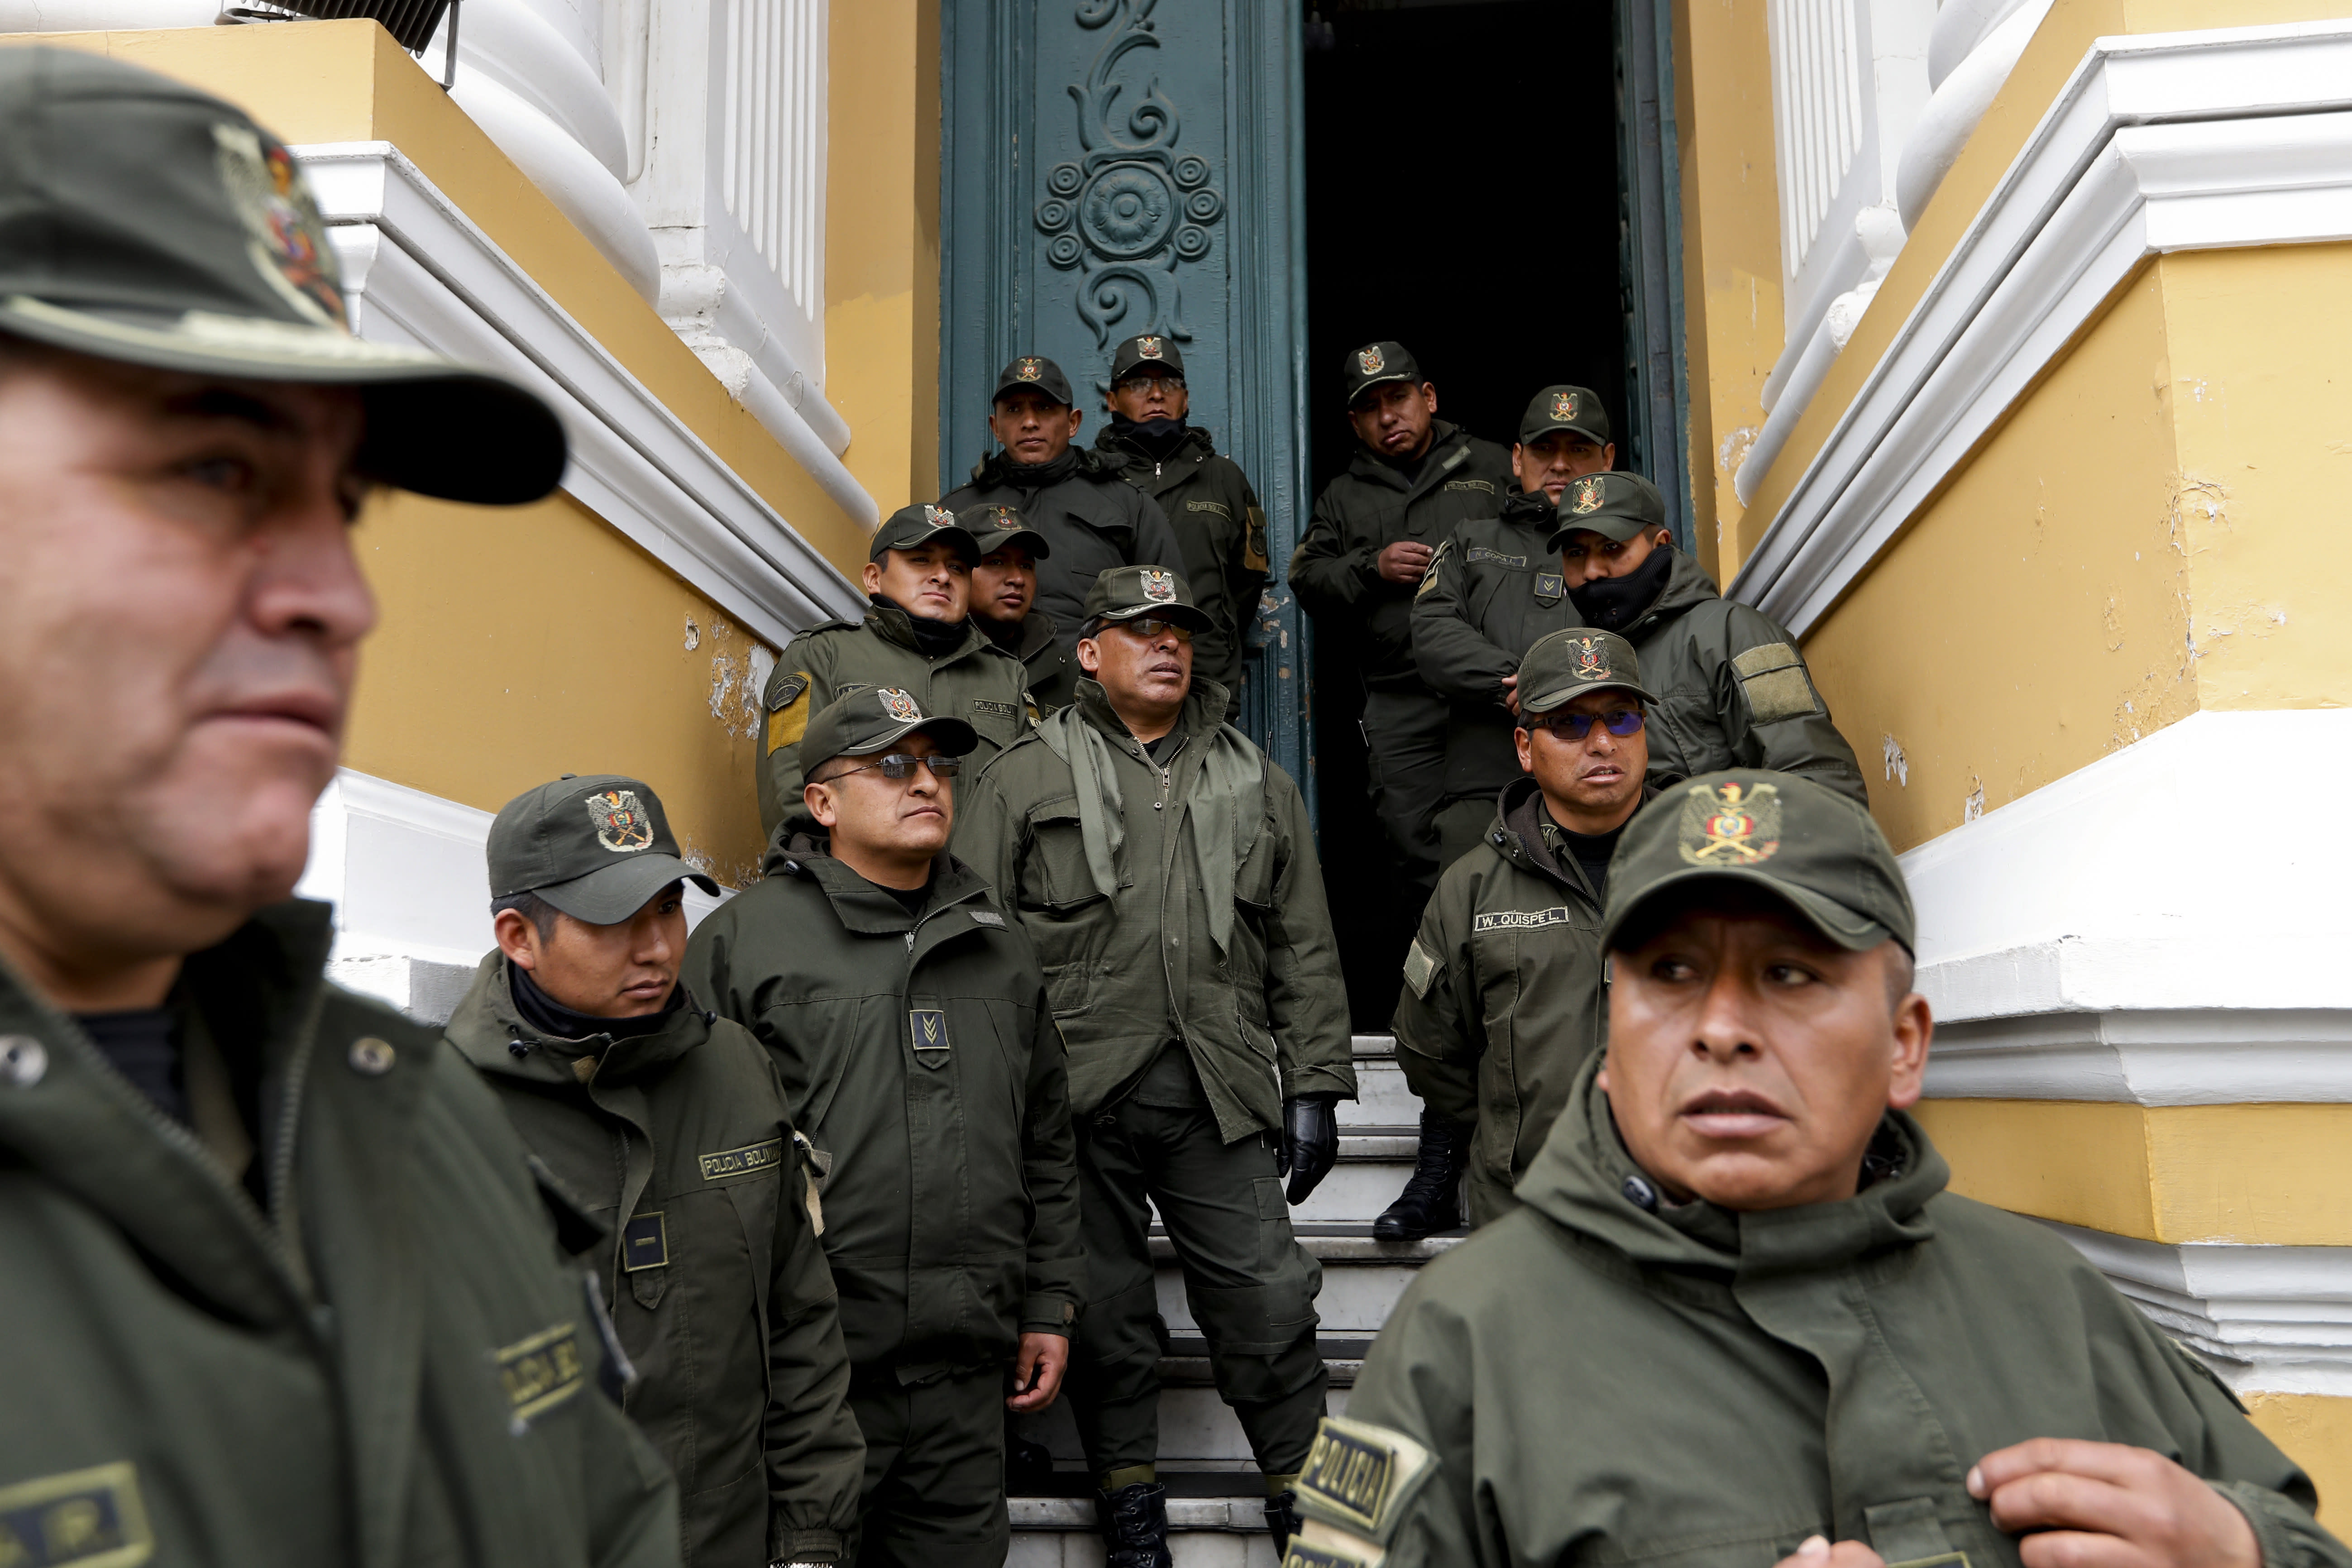 Police guard Congress in La Paz, Bolivia, Monday, Nov. 11, 2019. Bolivian President Evo Morales' Nov. 10 resignation, under mounting pressure from the military and the public after his re-election victory triggered weeks of fraud allegations and deadly demonstrations, leaves a power vacuum and a country torn by protests against and for his government. (AP Photo/Natacha Pisarenko)